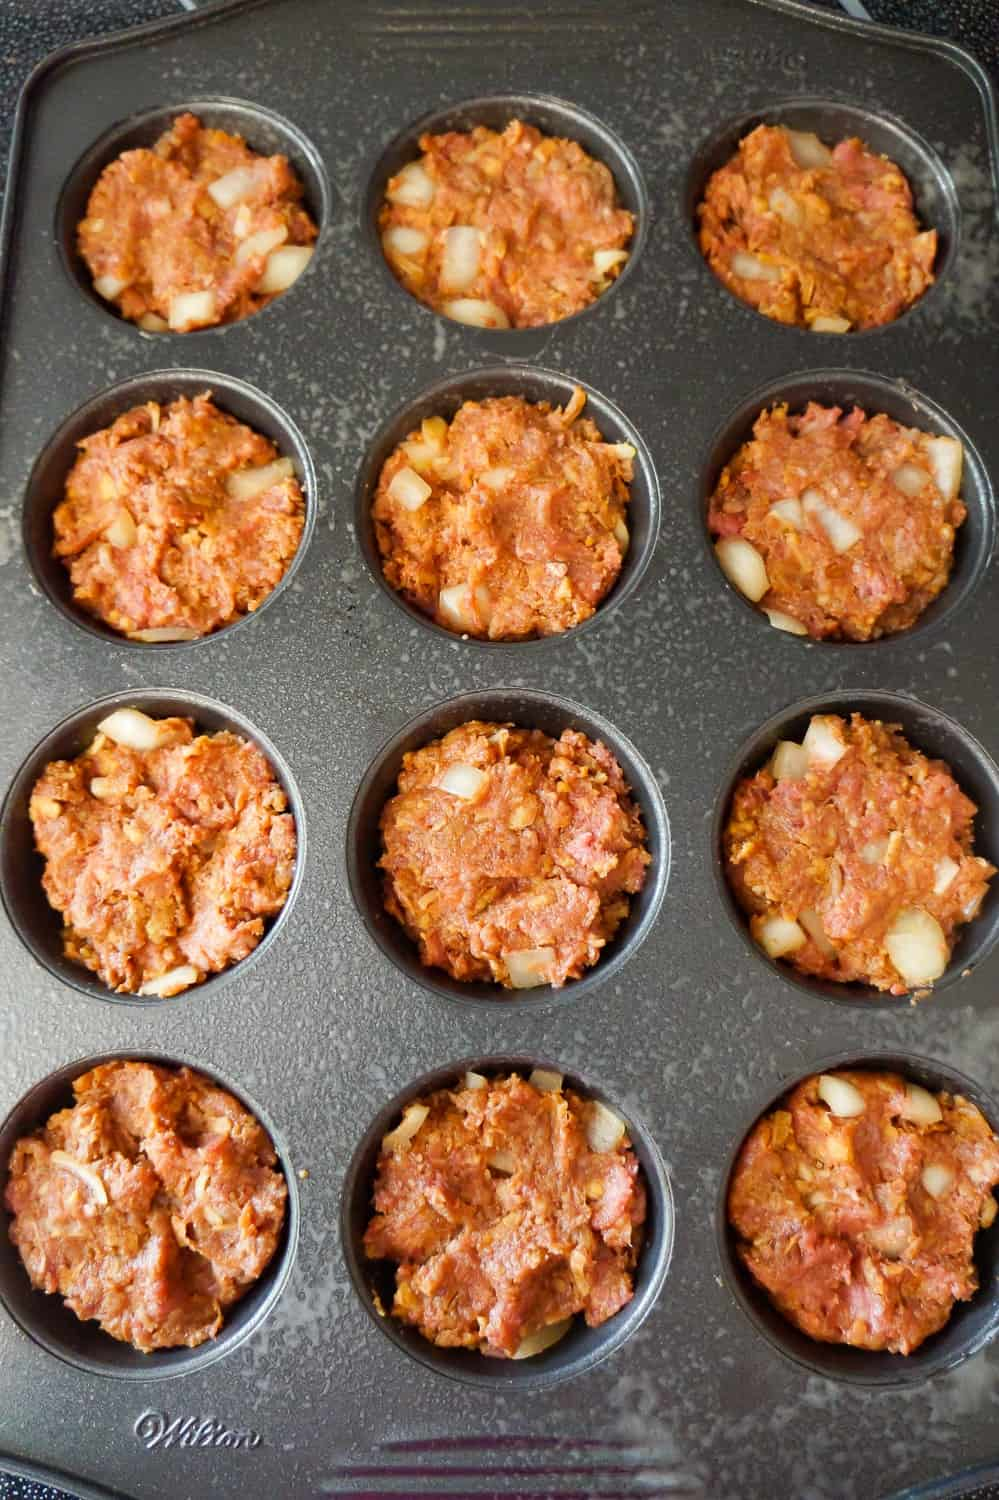 meatloaf mixture pressed into muffin tins